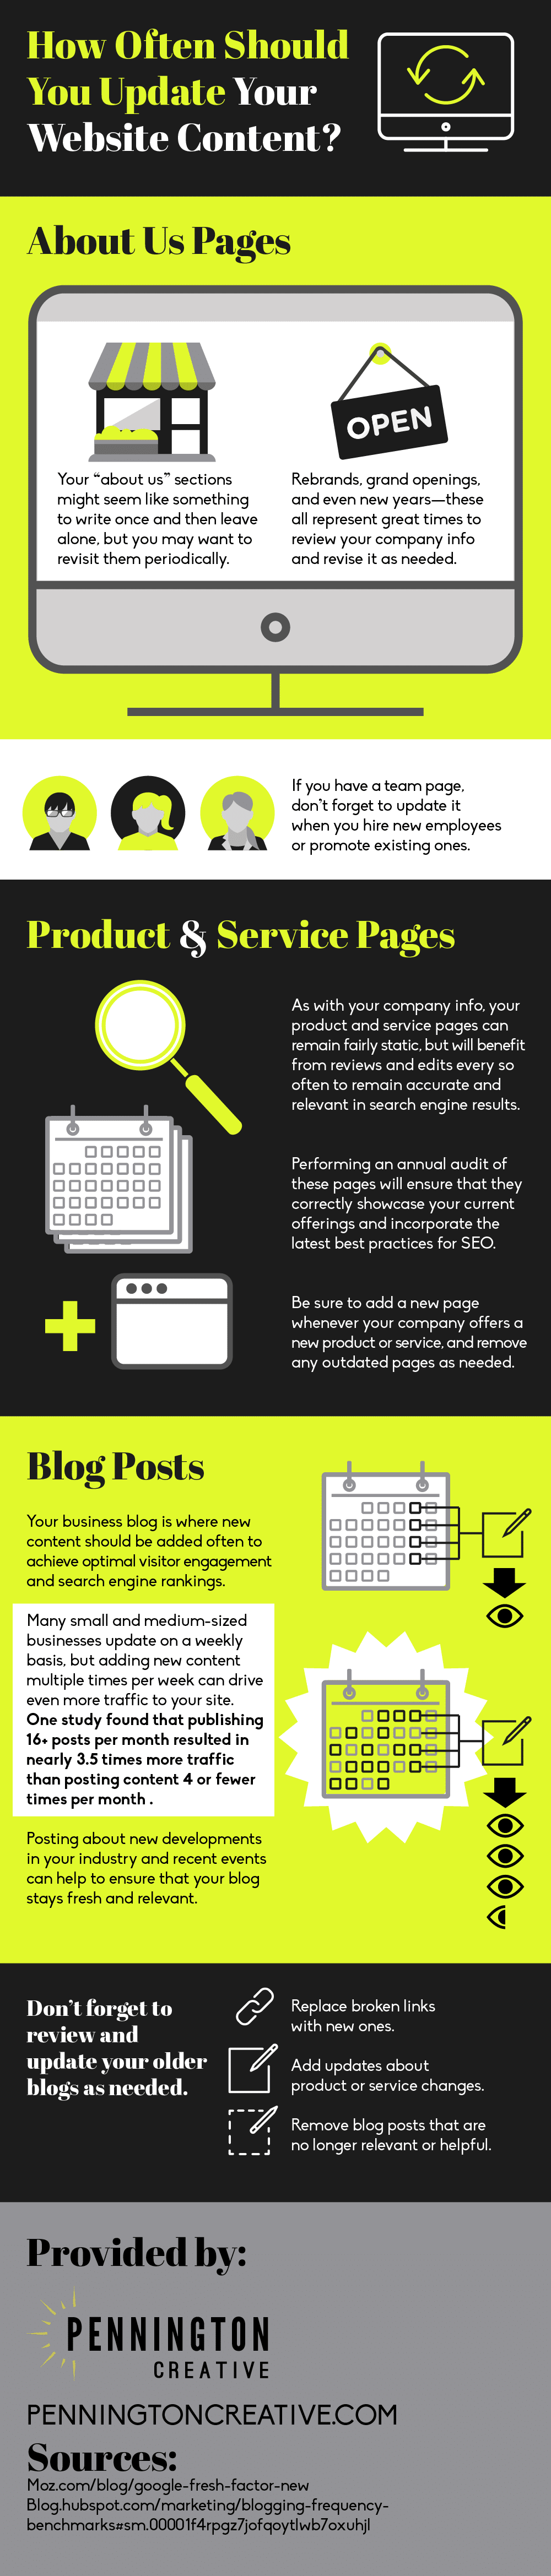 Infographic guide to keeping your web content updated for the best SEO.